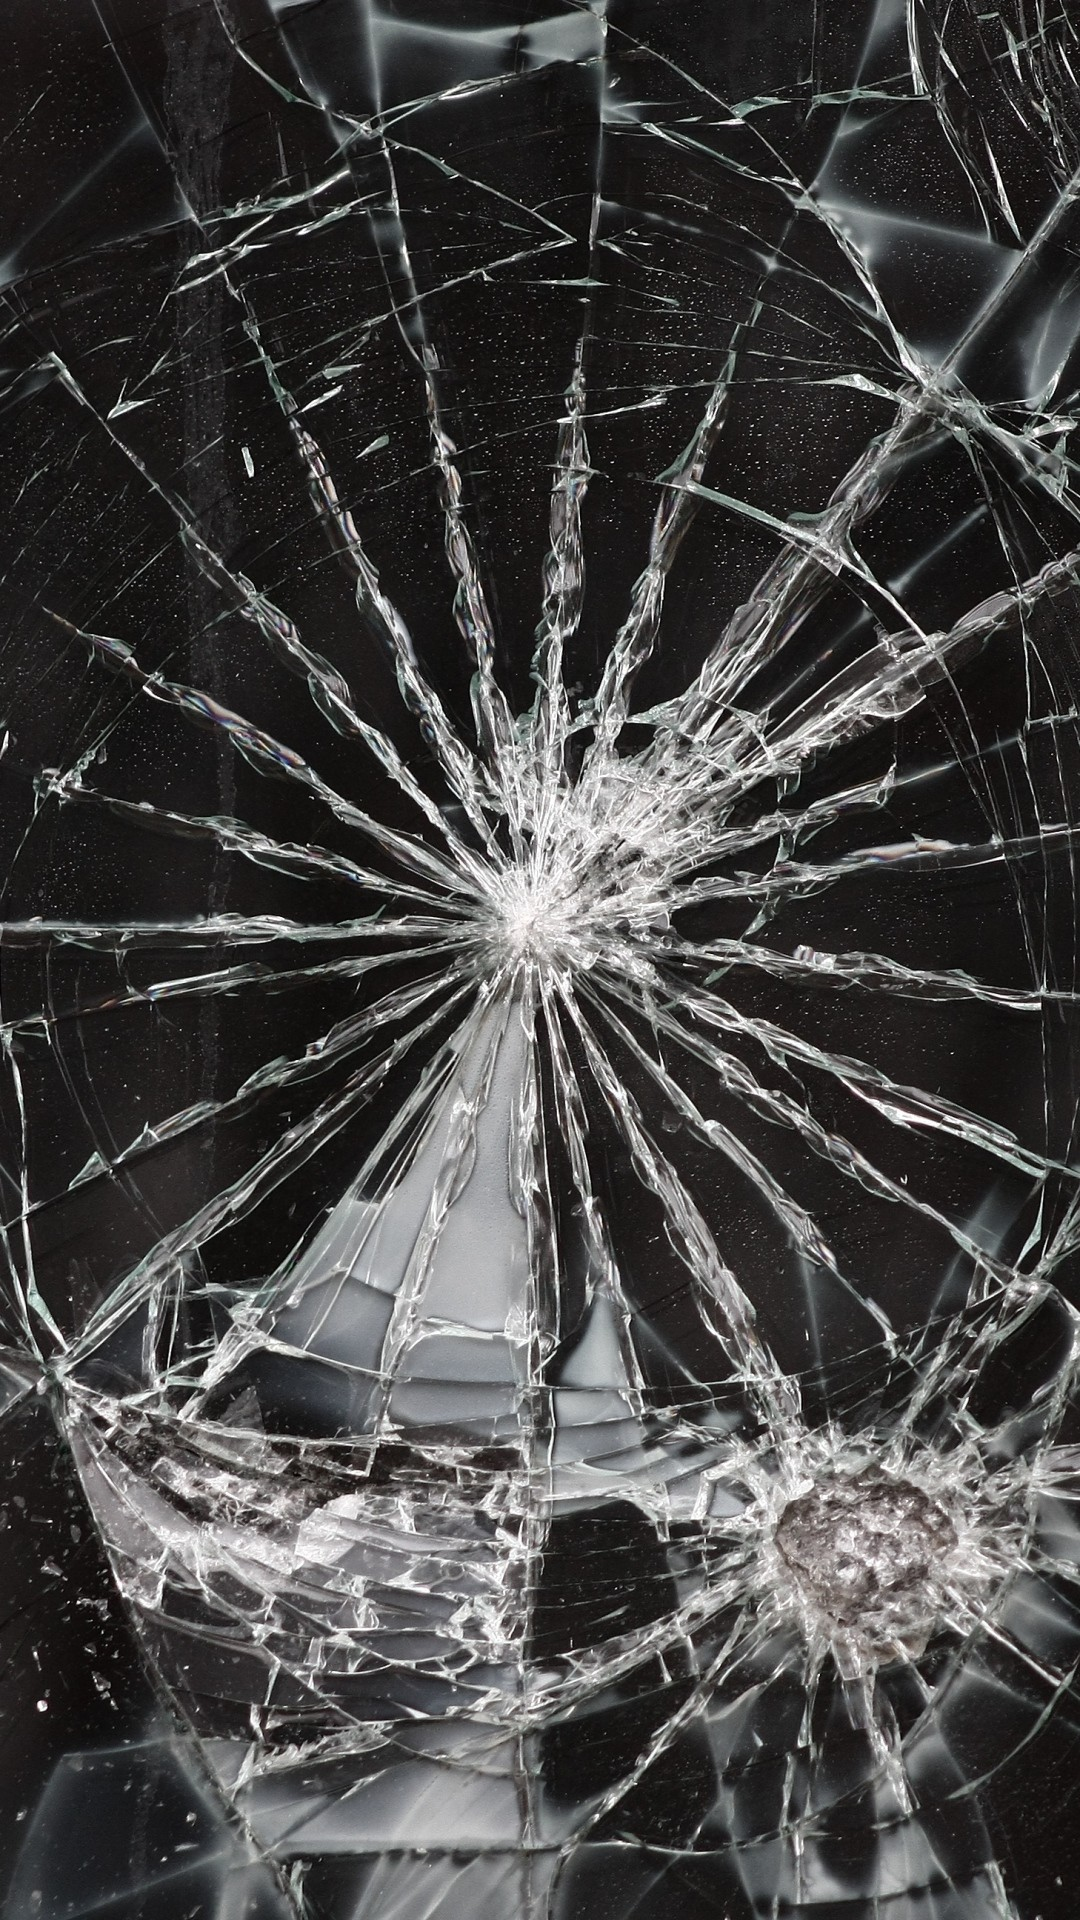 1920x1200 Ideas About Cracked Screen On Pinterest Pranks To 1920A 1200